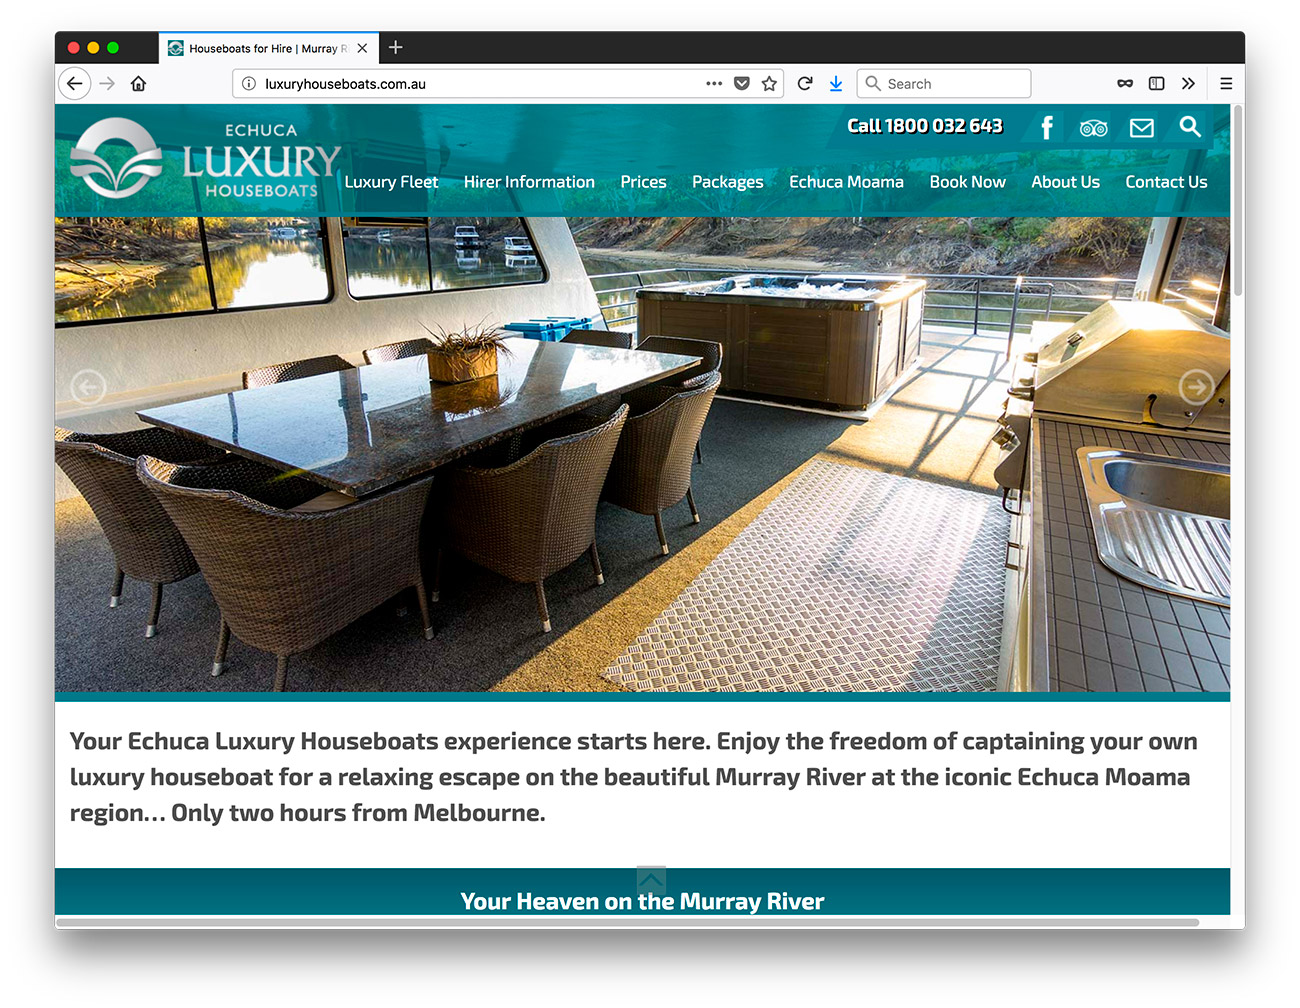 Echuca Luxury Houseboats website design